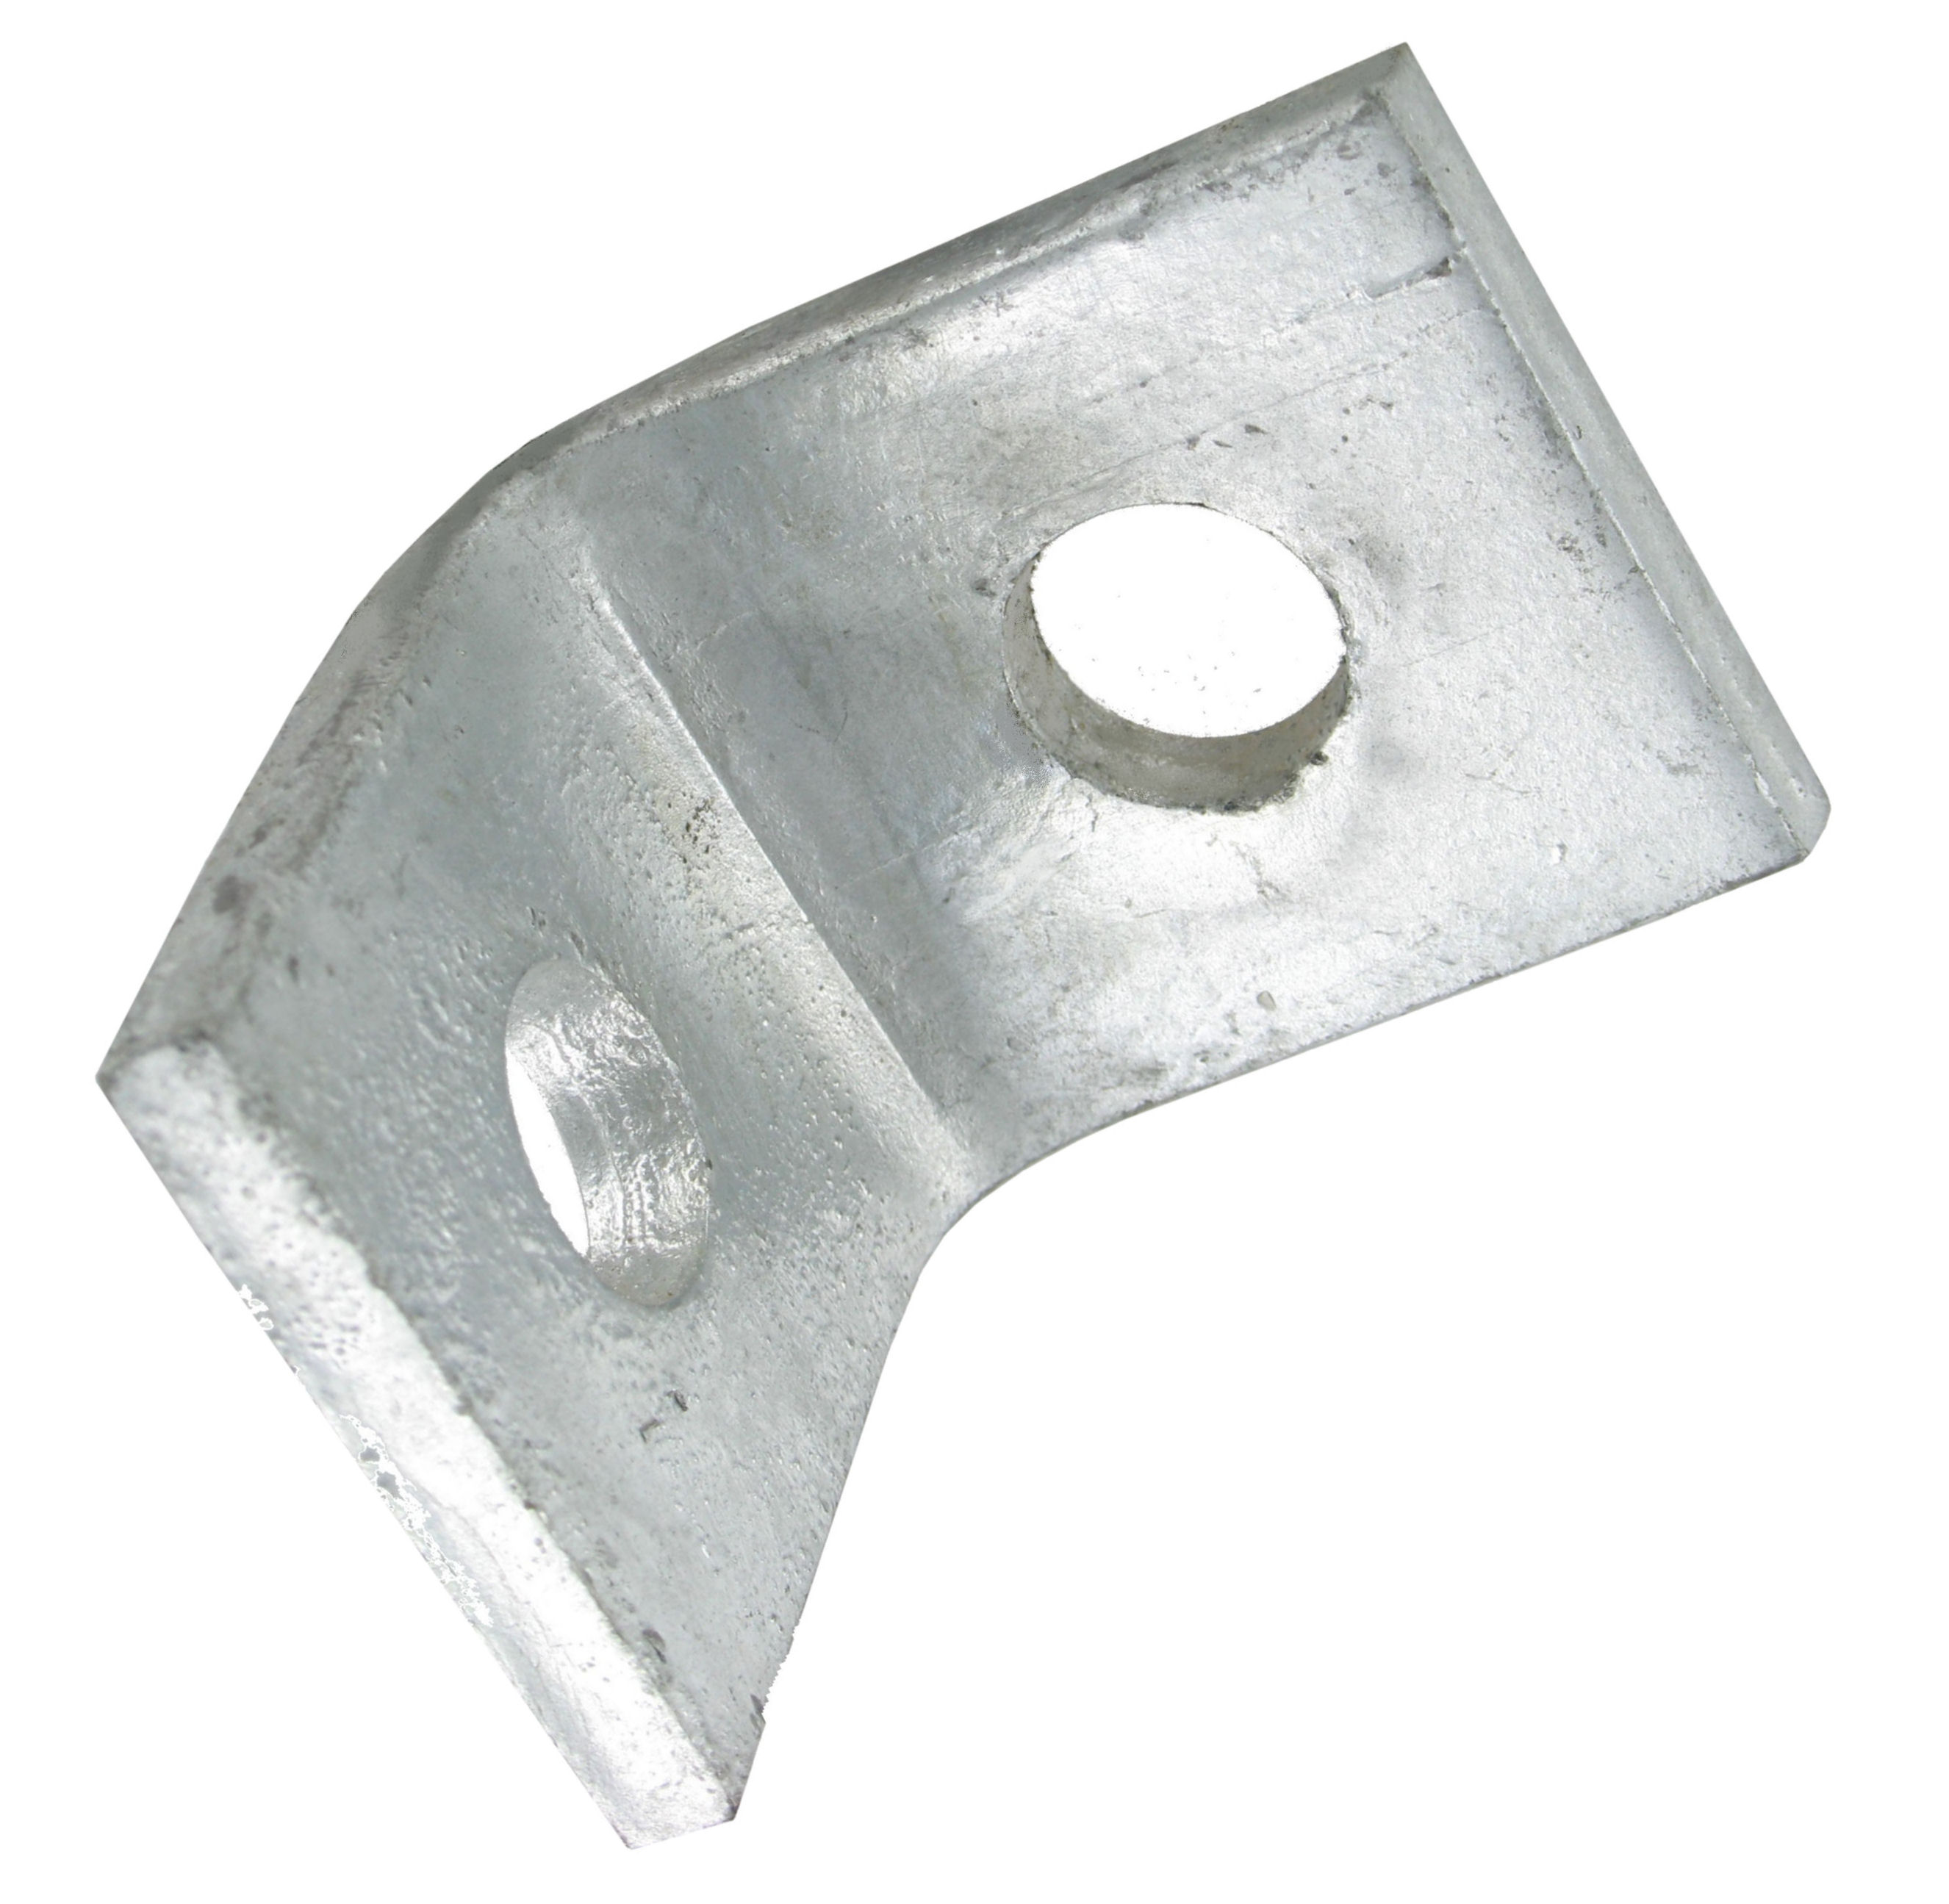 Deligo D501 Bracket 90D 1x1Hole 57x40mm